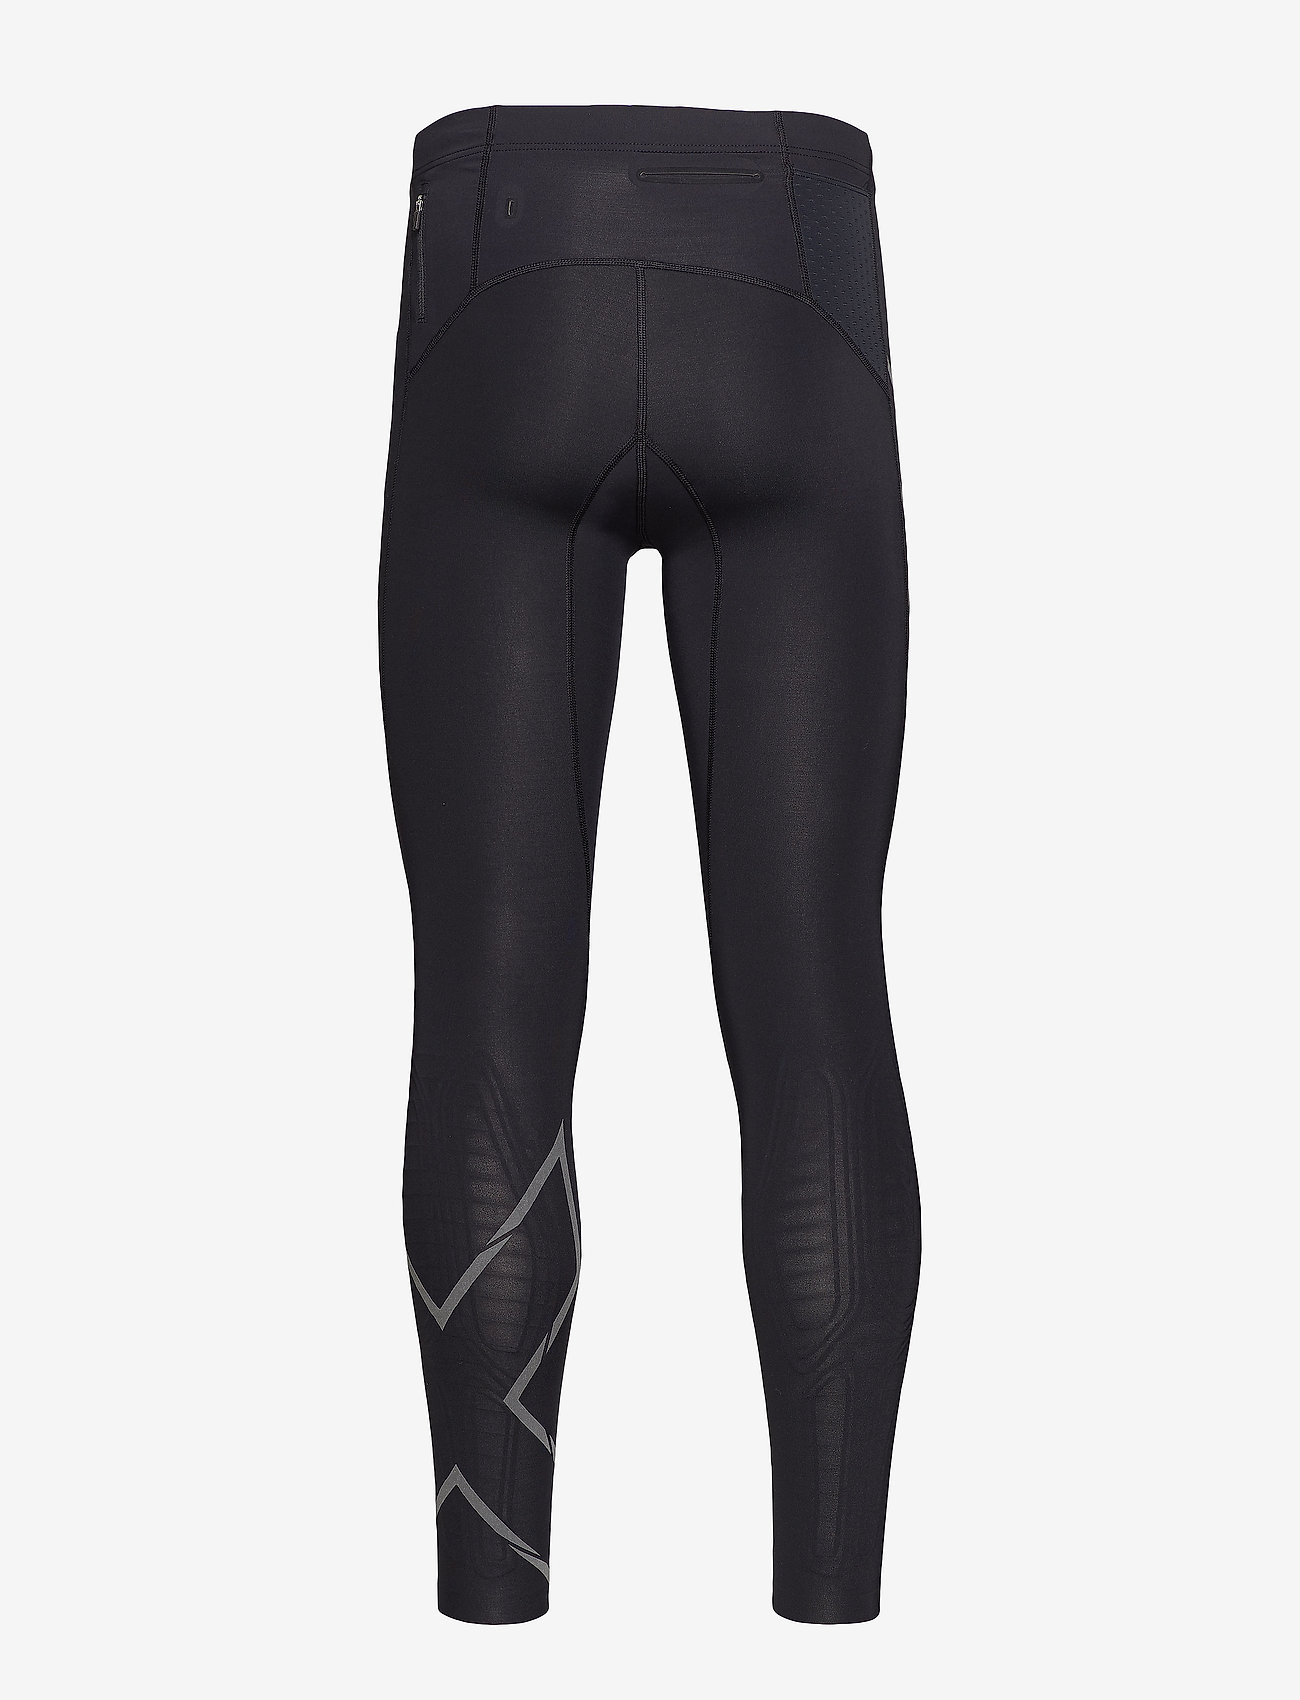 2XU - LIGHT SPEED COMPRESSION TIGHT - løbe- og træningstights - black/ black reflective - 1